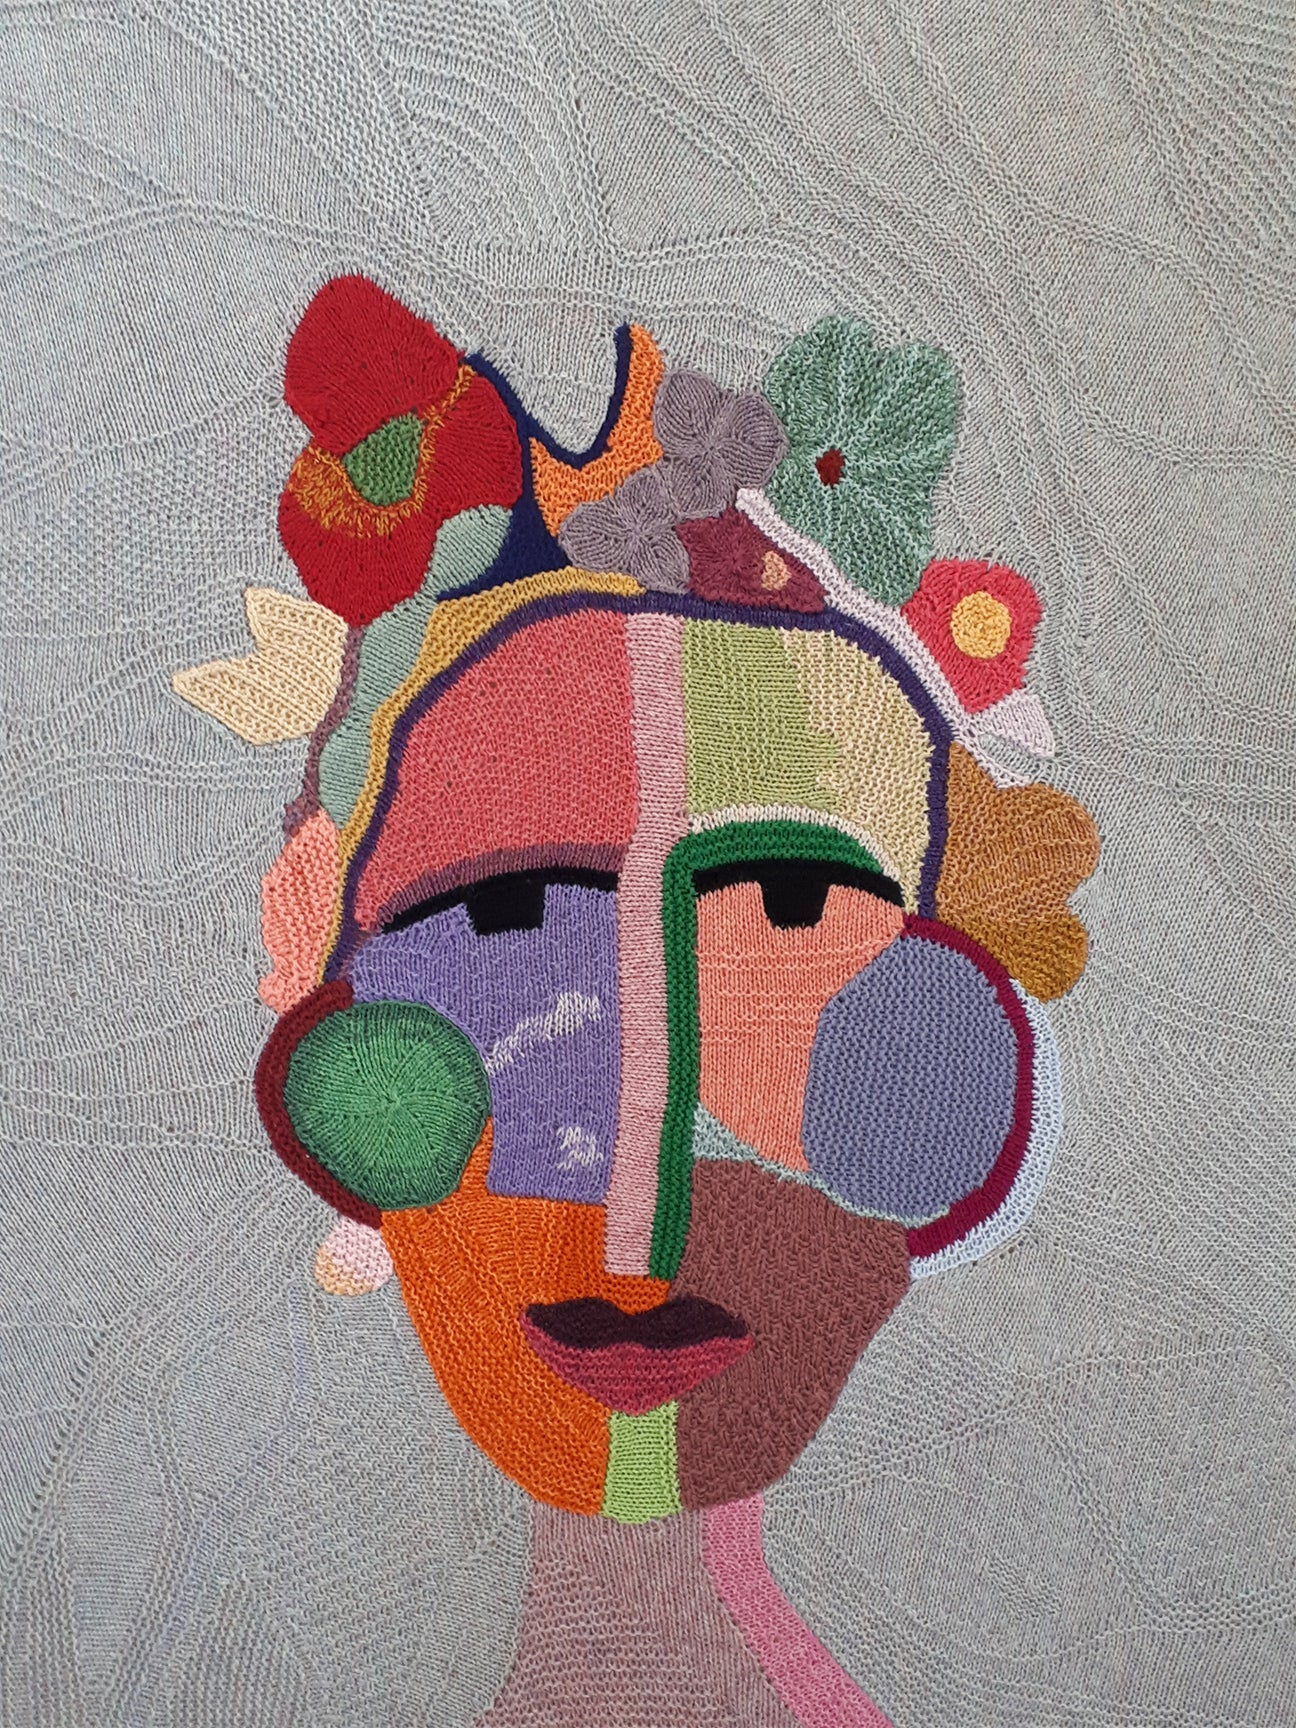 Knitted abstract portrait